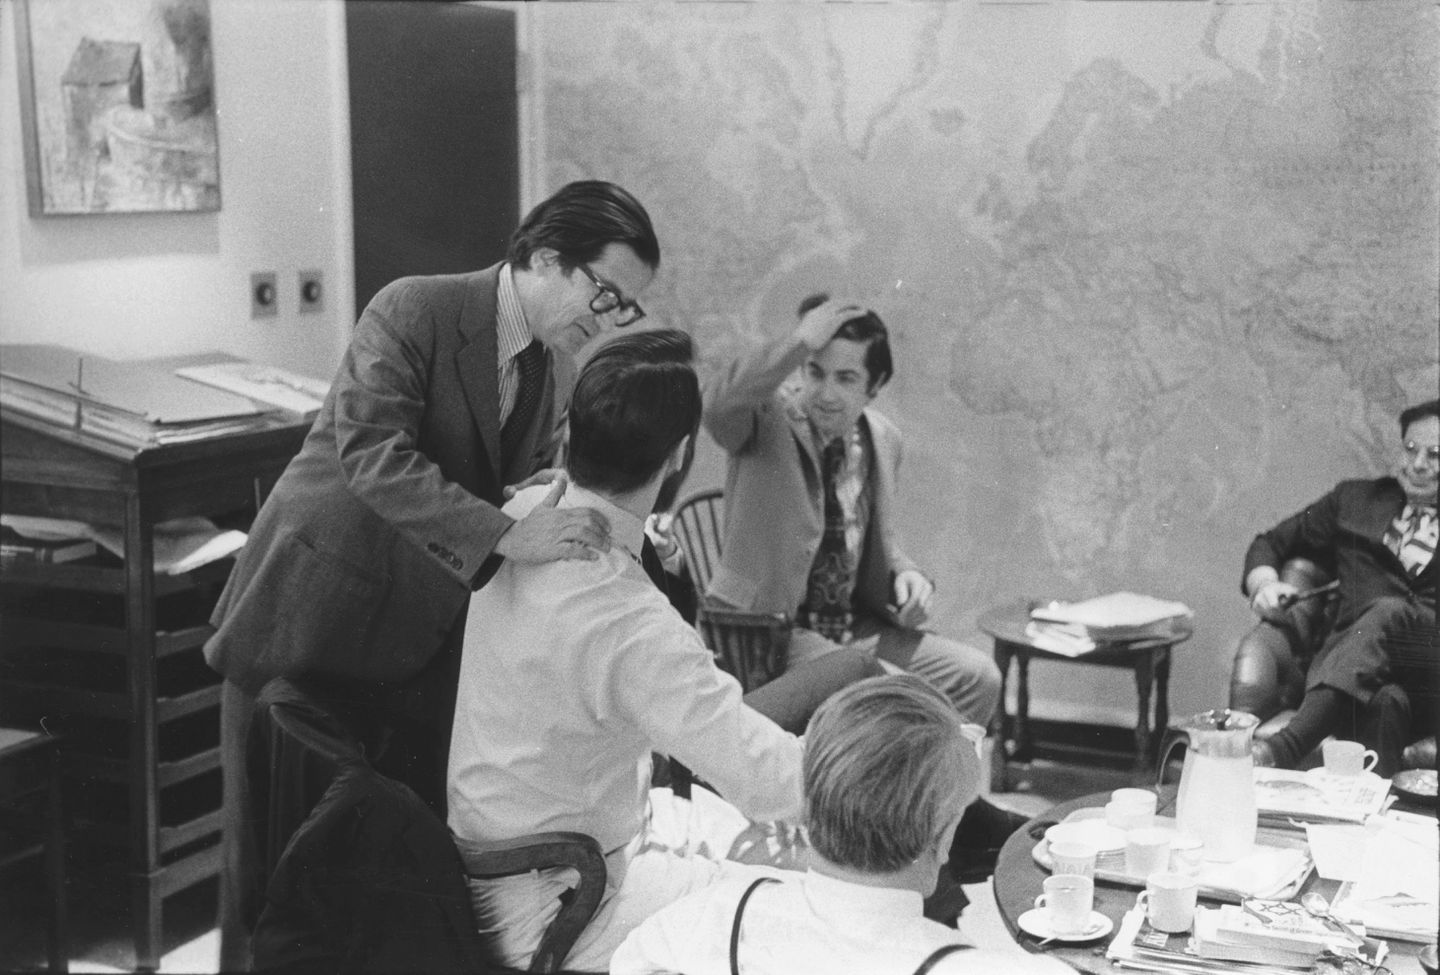 A.M. Rosenthal congratulated Hedrick Smith after publication of the Pentagon Papers in The New York Times in June 1971. Neil Sheehan is second from right.